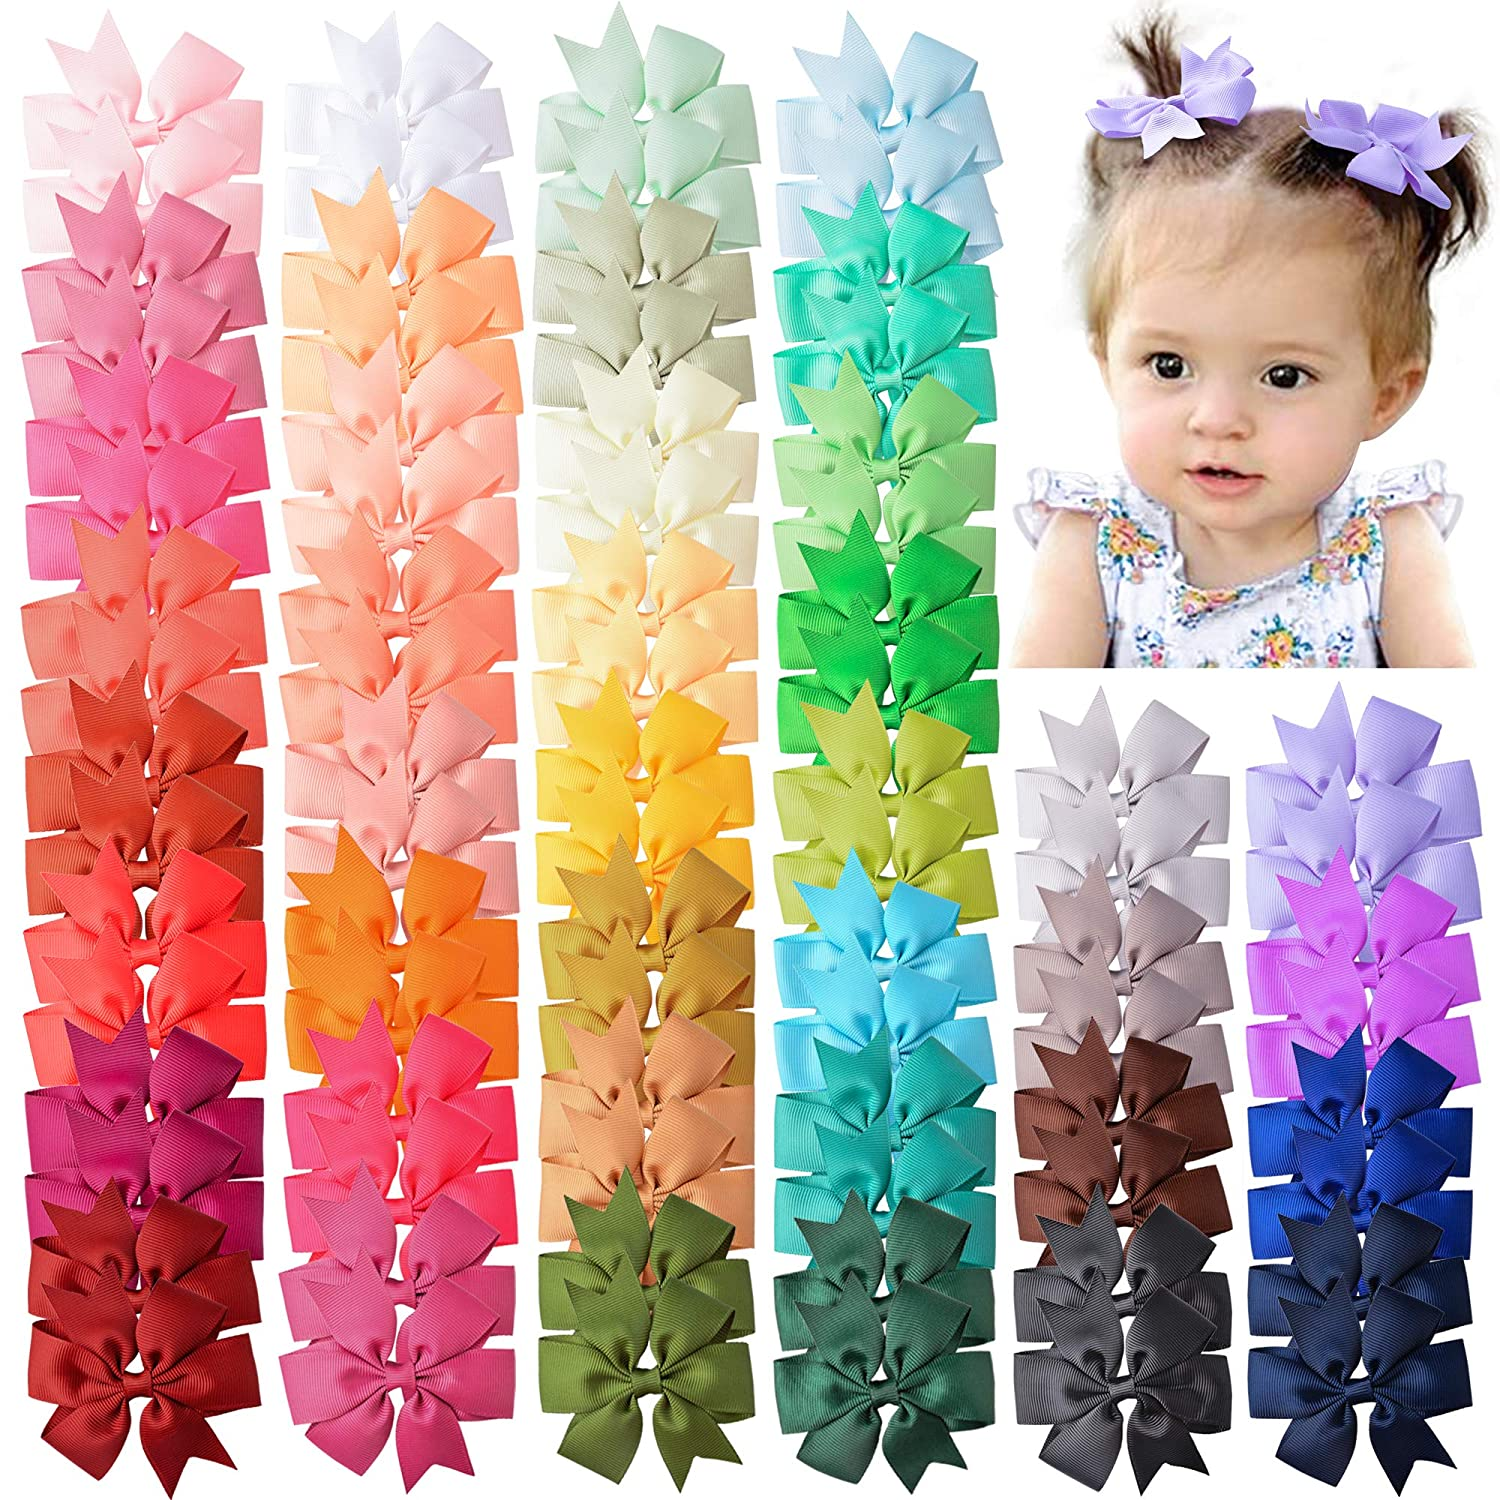 Coreeky 80 Pieces Boutique Grosgrain Ribbon Pinwheel Hair Bows Alligator Clips For Girls Babies Toddlers Teens Gifts In Pairs : Beauty